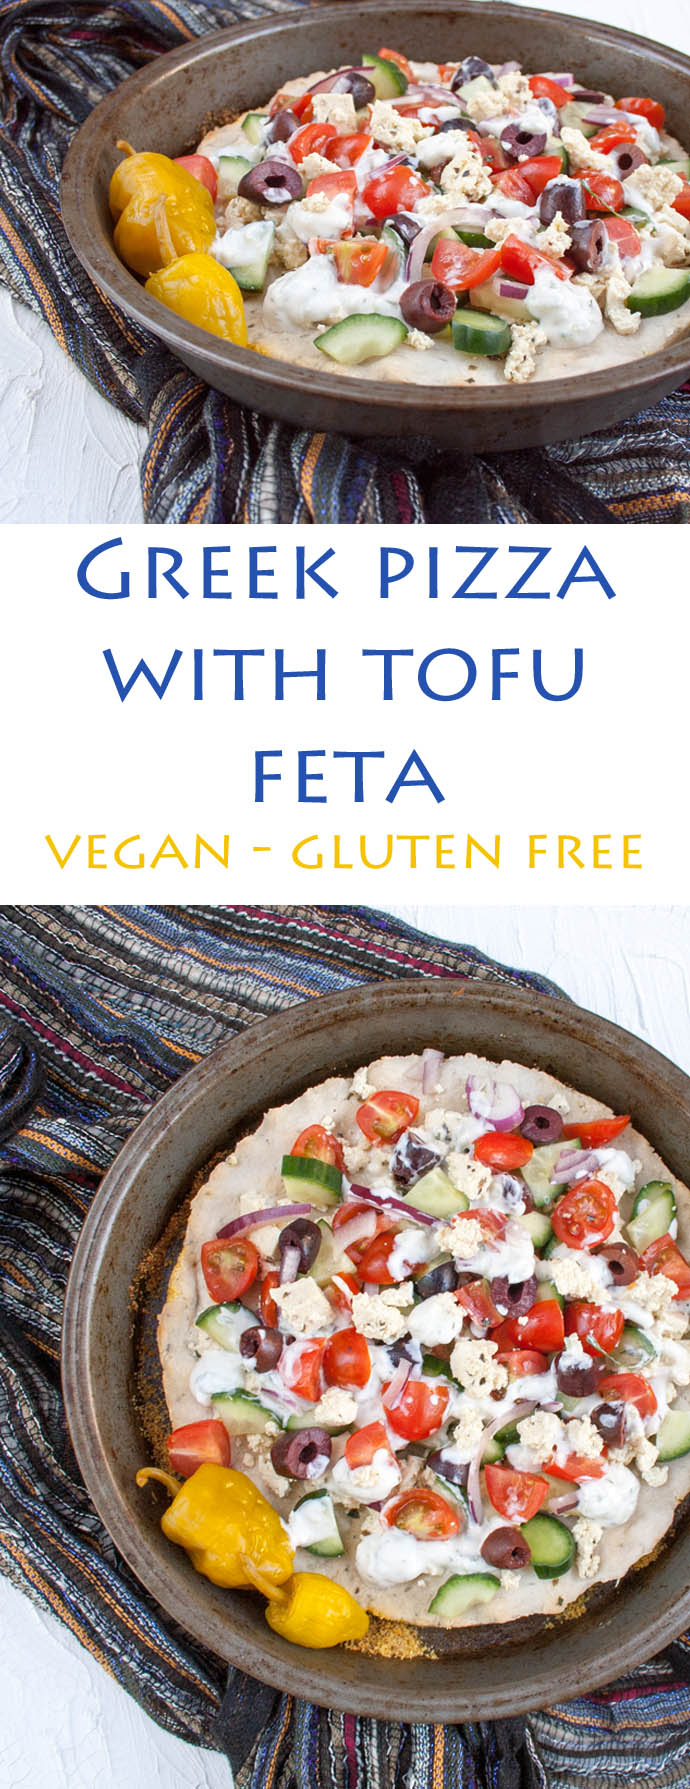 Greek Pizza with Tofu Feta (vegan, gluten free) - This healthy pizza is a great way to switch up pizza night! Made with tofu feta and vegan tzatziki, it is sure to please!